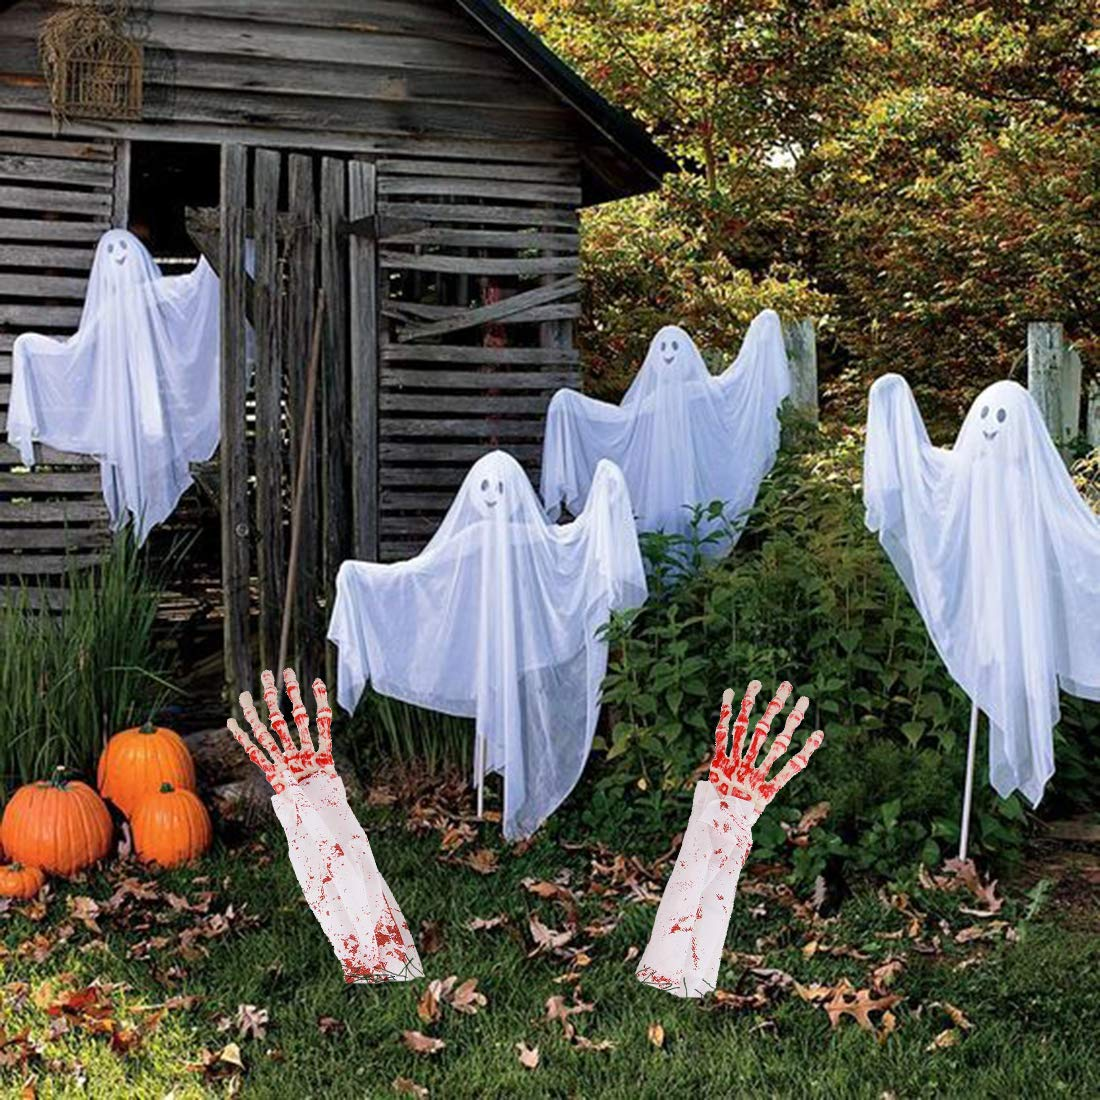 Yamonic Halloween Zombie Hands and Arms Zombie Lawn Stakes Bloody Arm Lawn Halloween Yard Stakes, Groundbreakers for Halloween Yard Decorations (White)